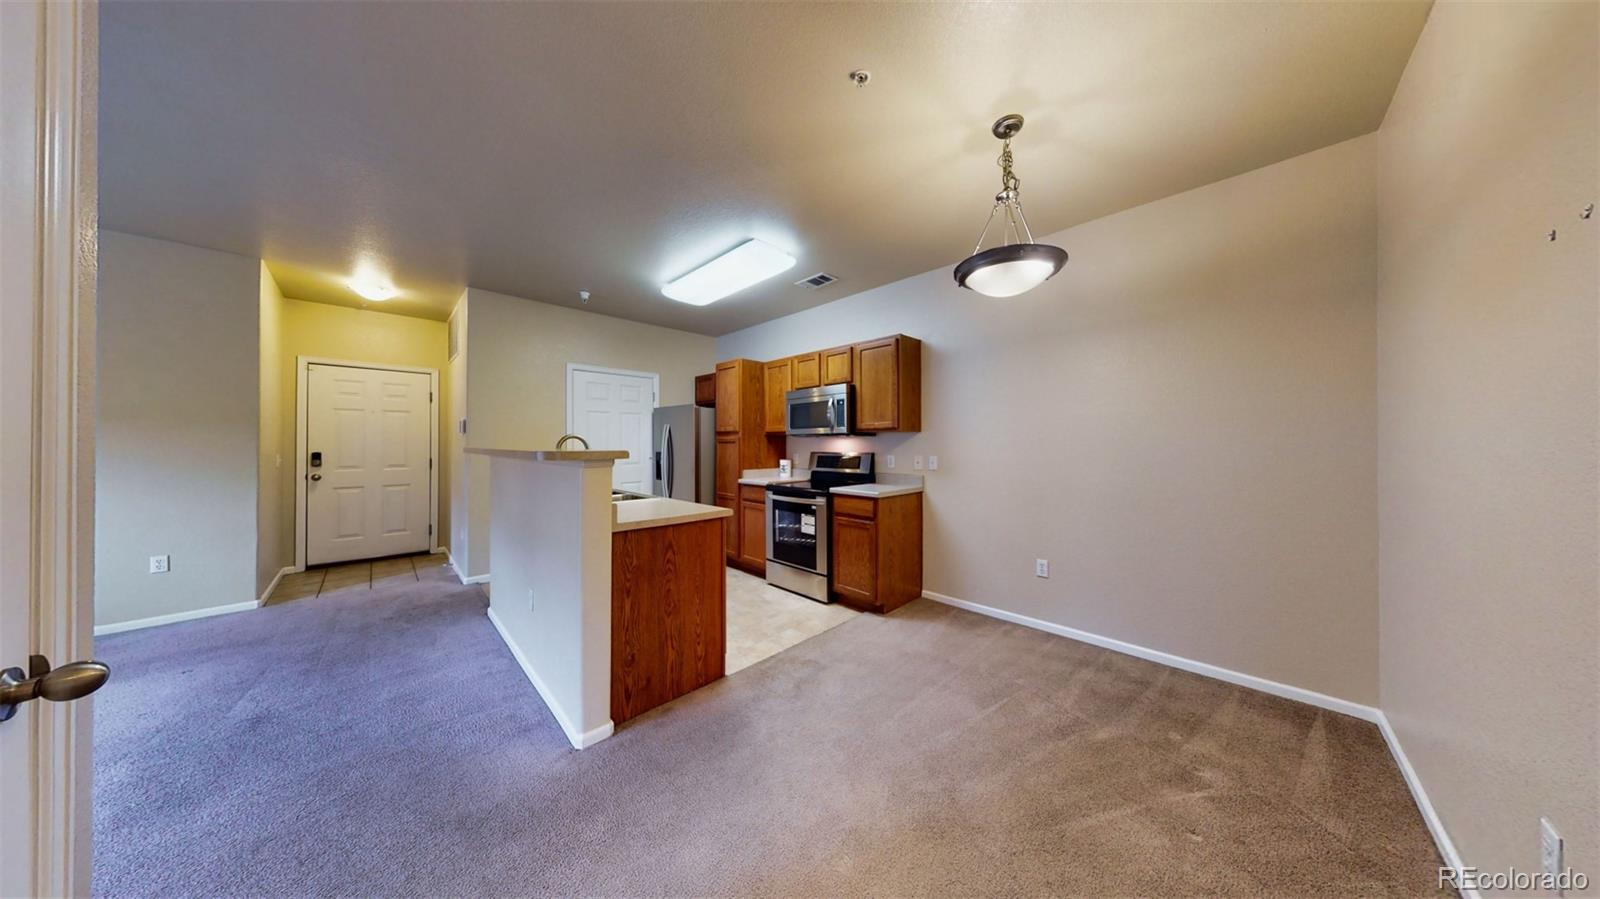 MLS# 3562922 - 7 - 8123 W 51st Place #202, Arvada, CO 80002